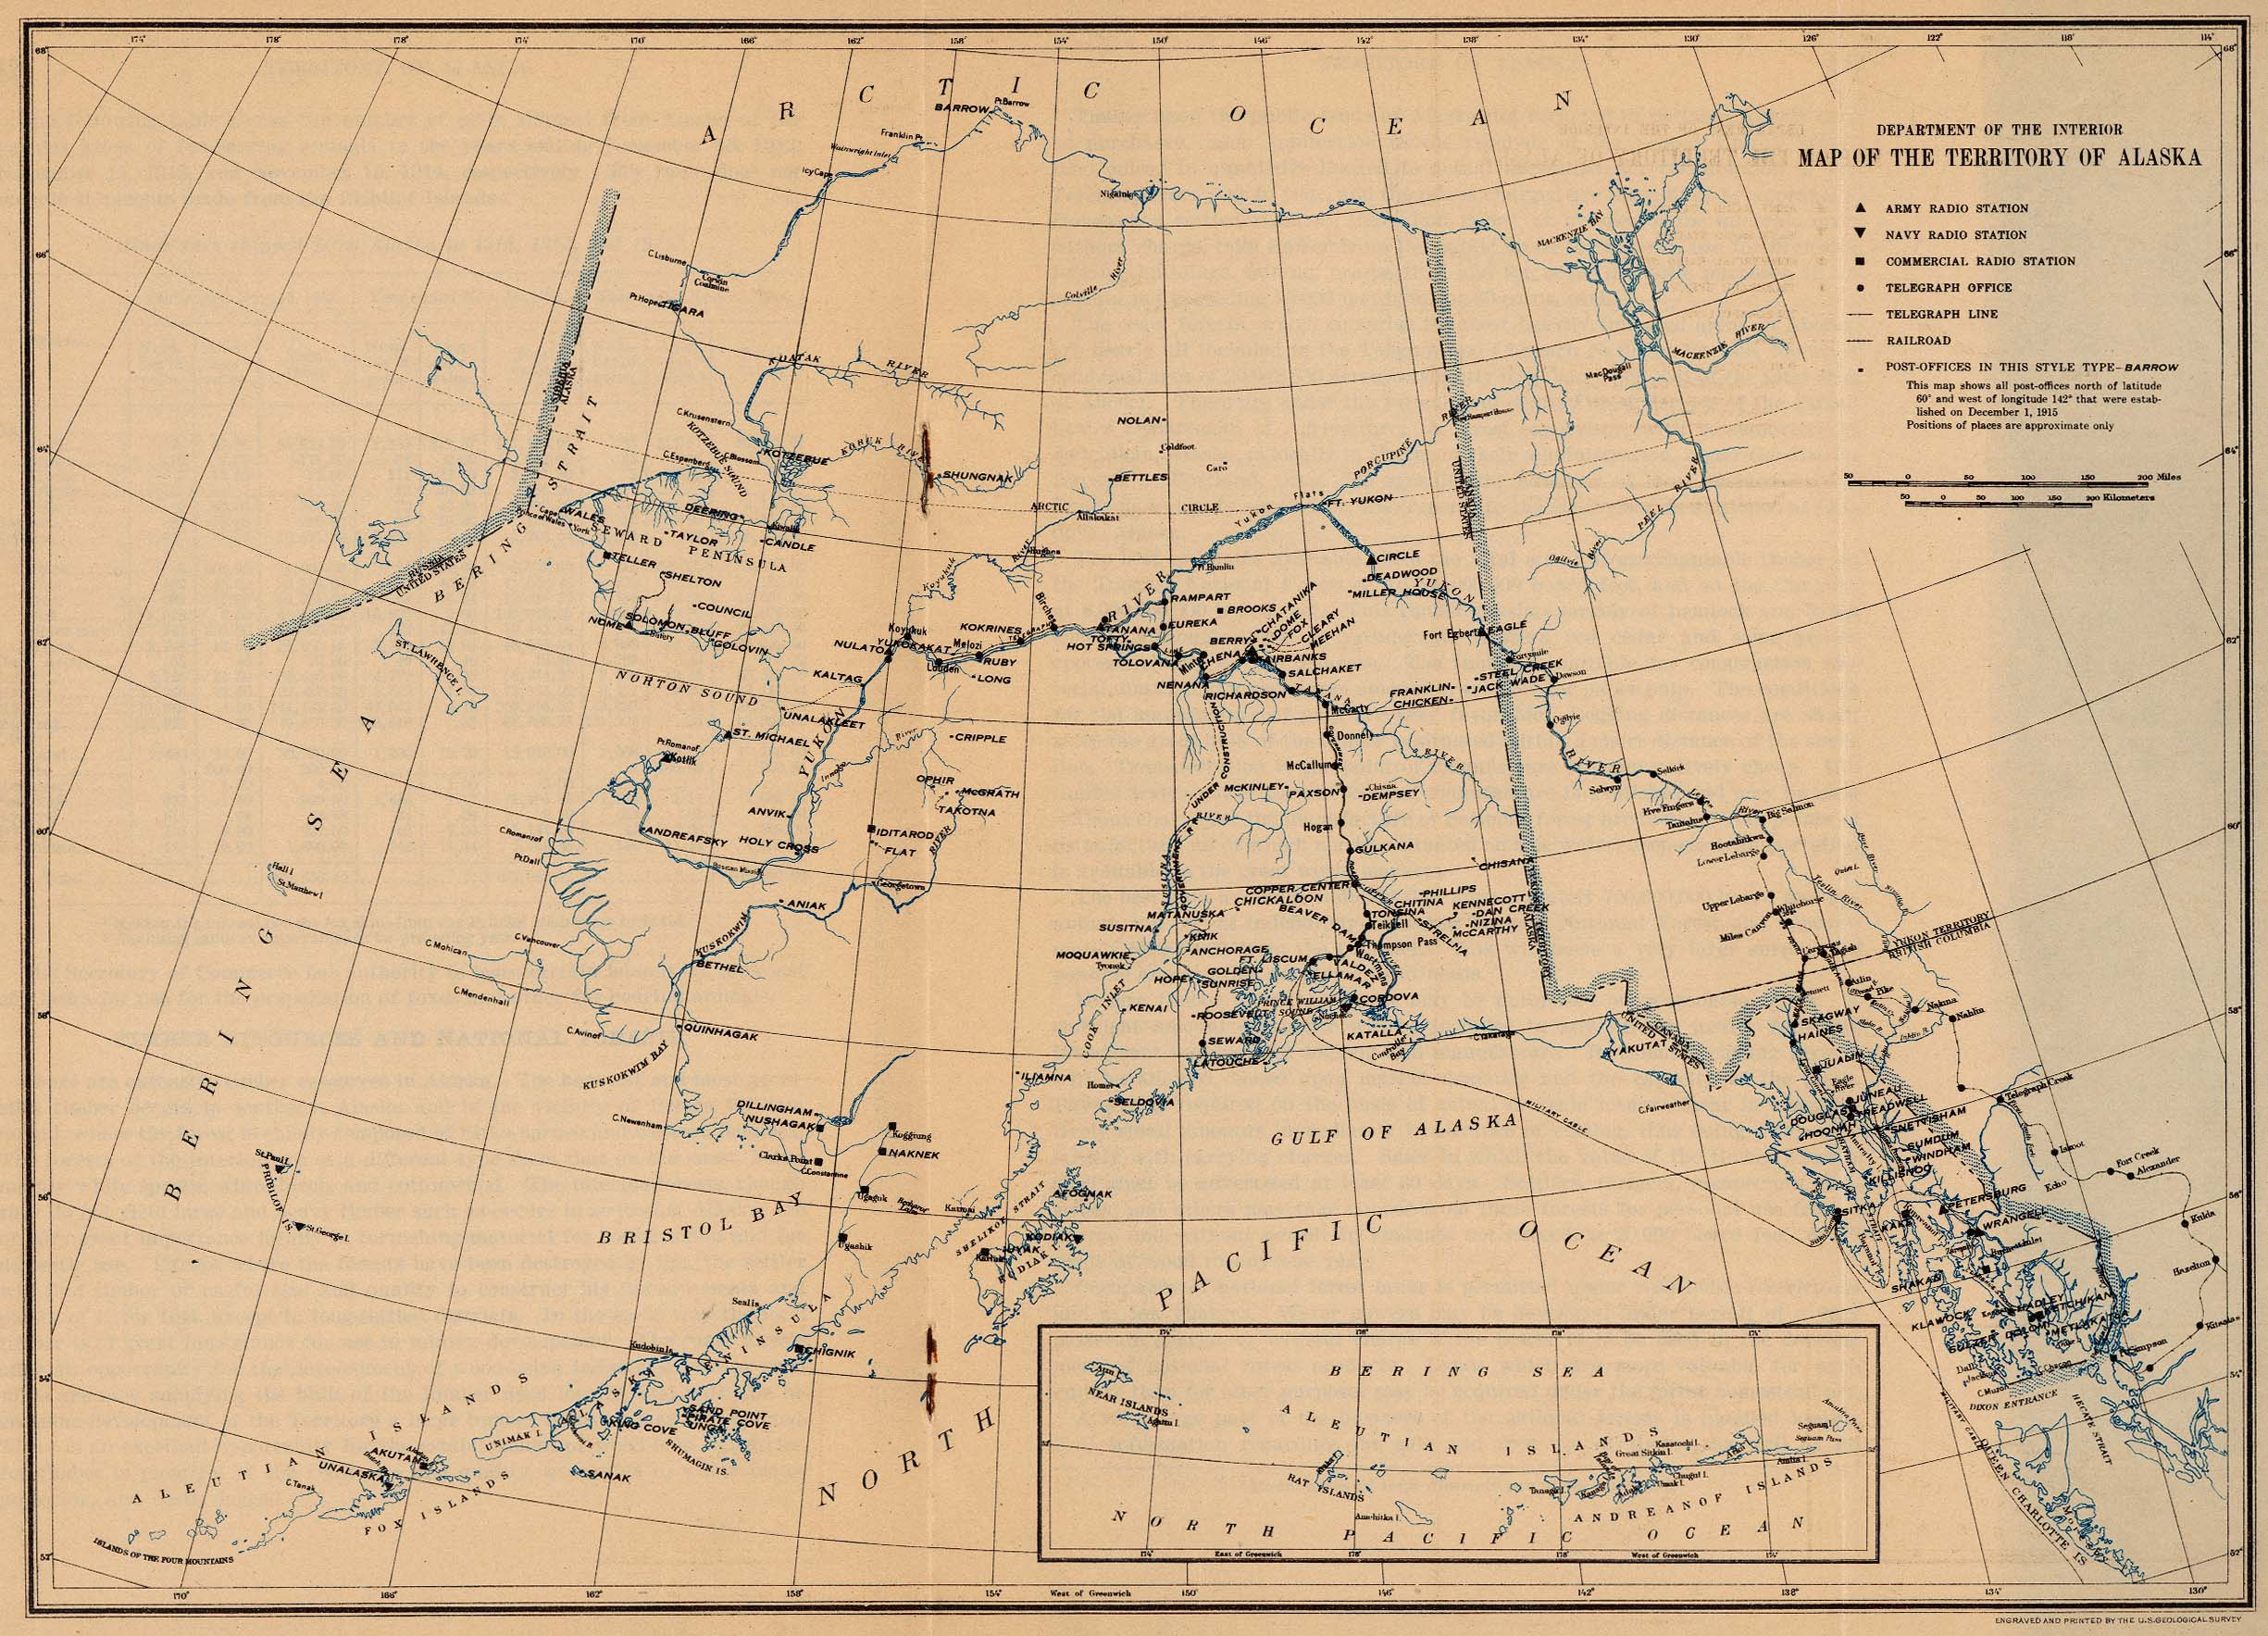 Map of the Territory of Alaska 1915